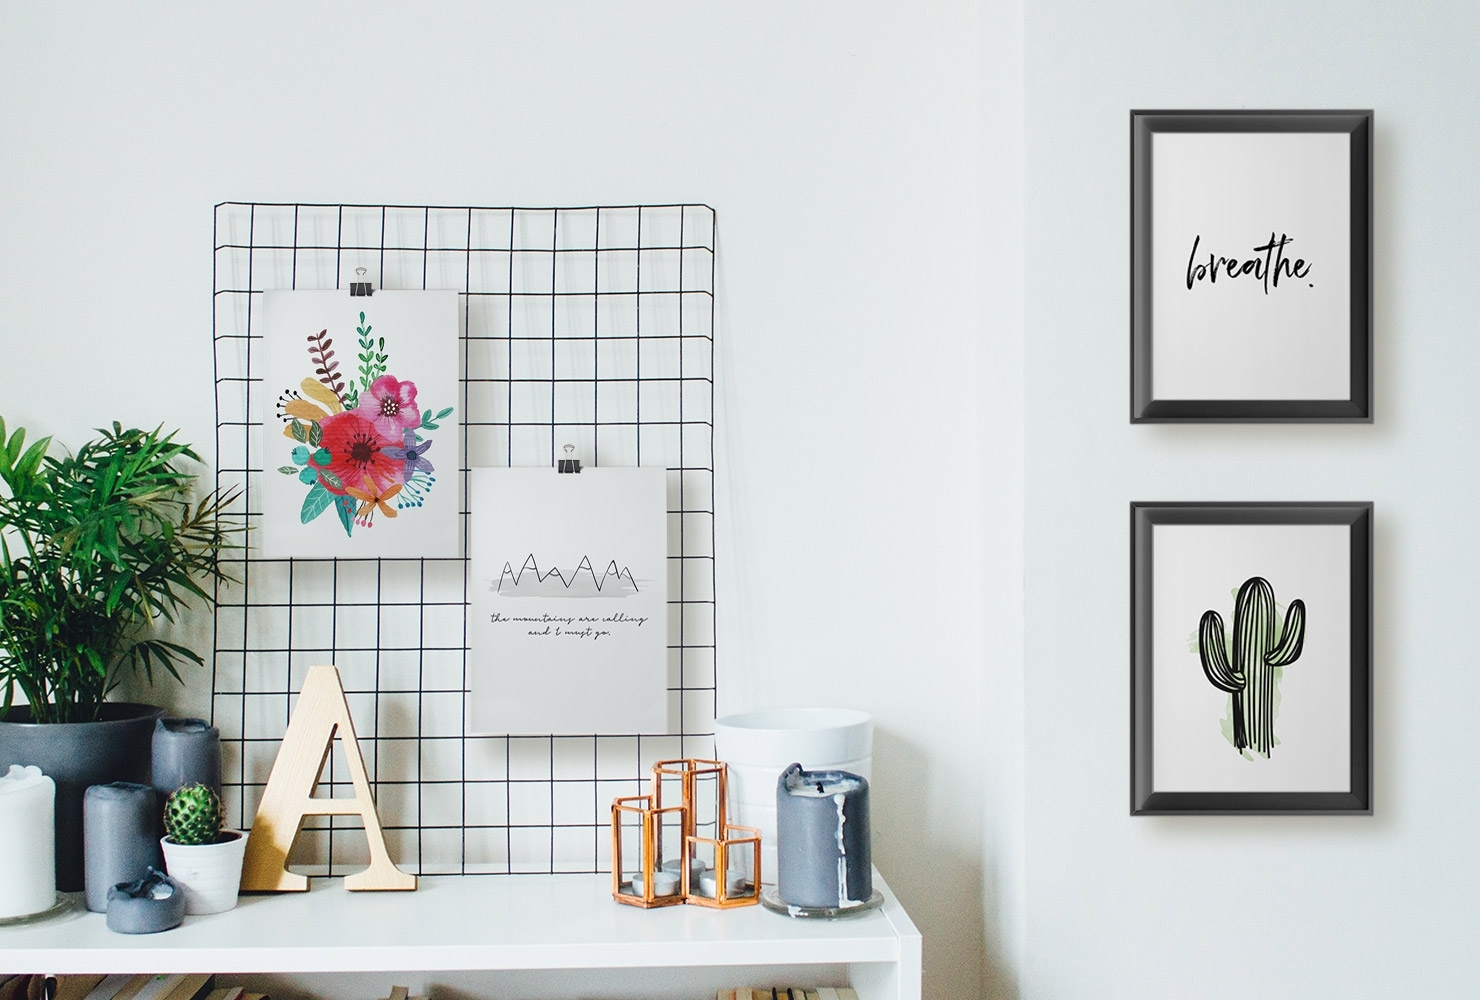 25 Unique Diy Wall Art Ideas (with Printables) | Shutterfly For Recent Wall Art Diy (View 11 of 20)